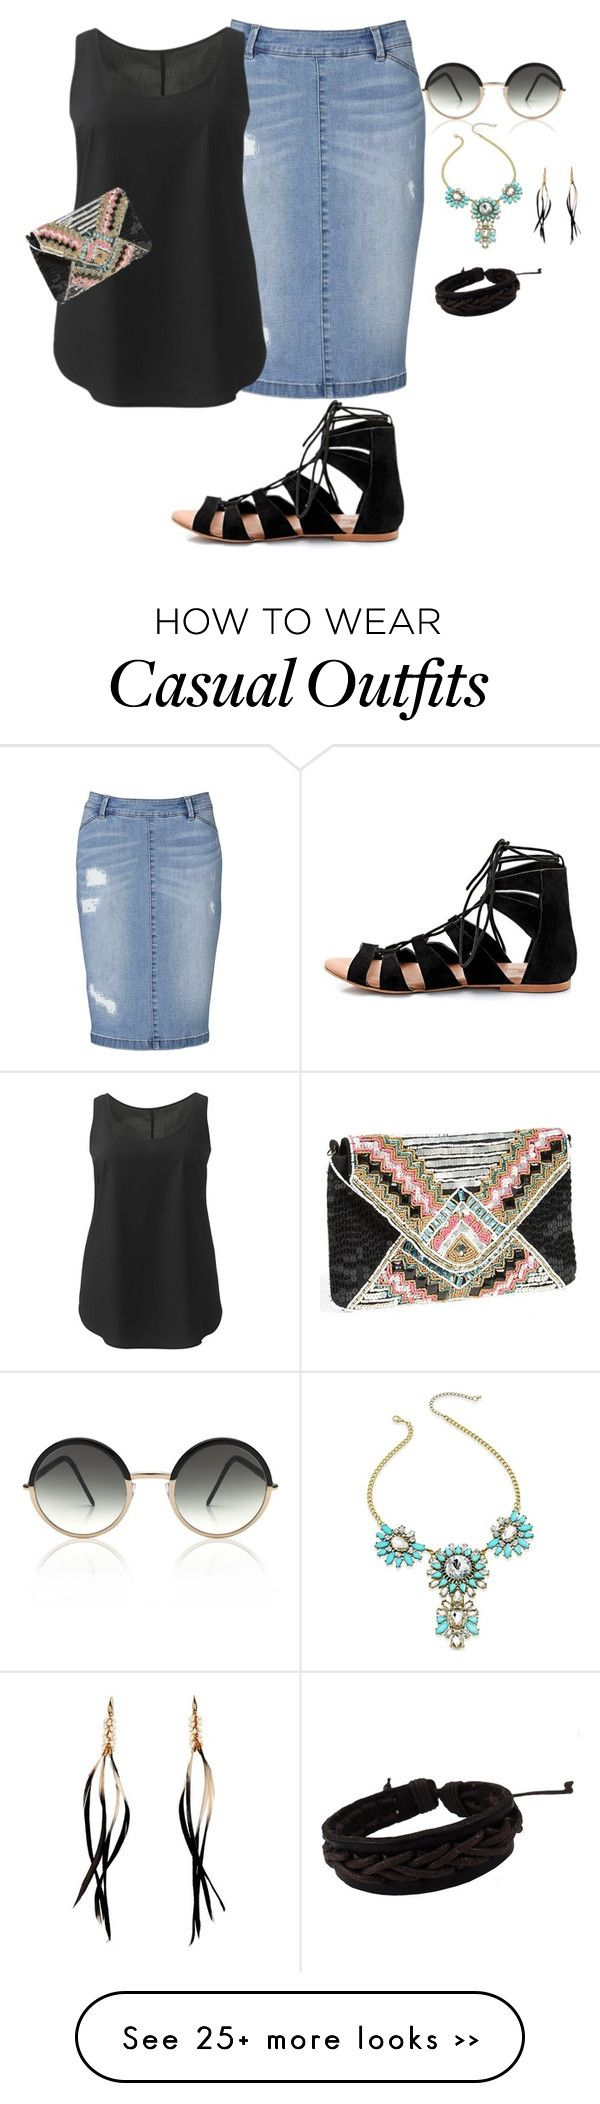 """""""my plus size denim skirt style look2/summer cute and casual"""" by kristie-payne on Polyvore"""